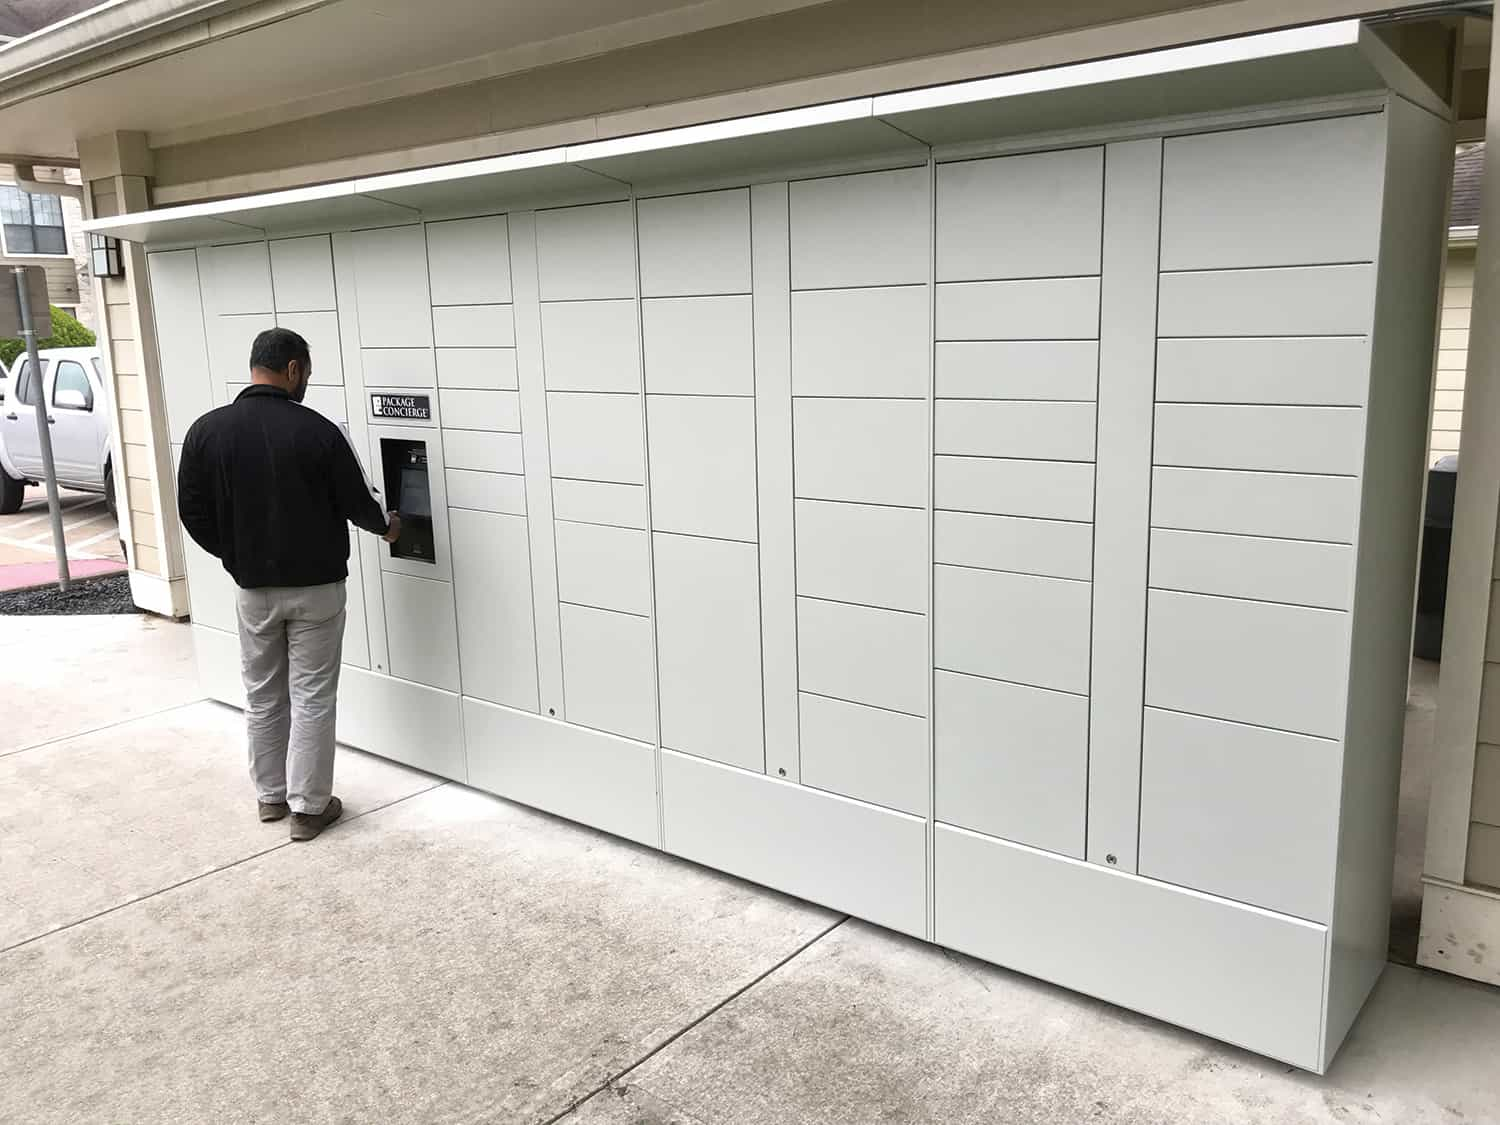 Man accessing outdoor package locker system